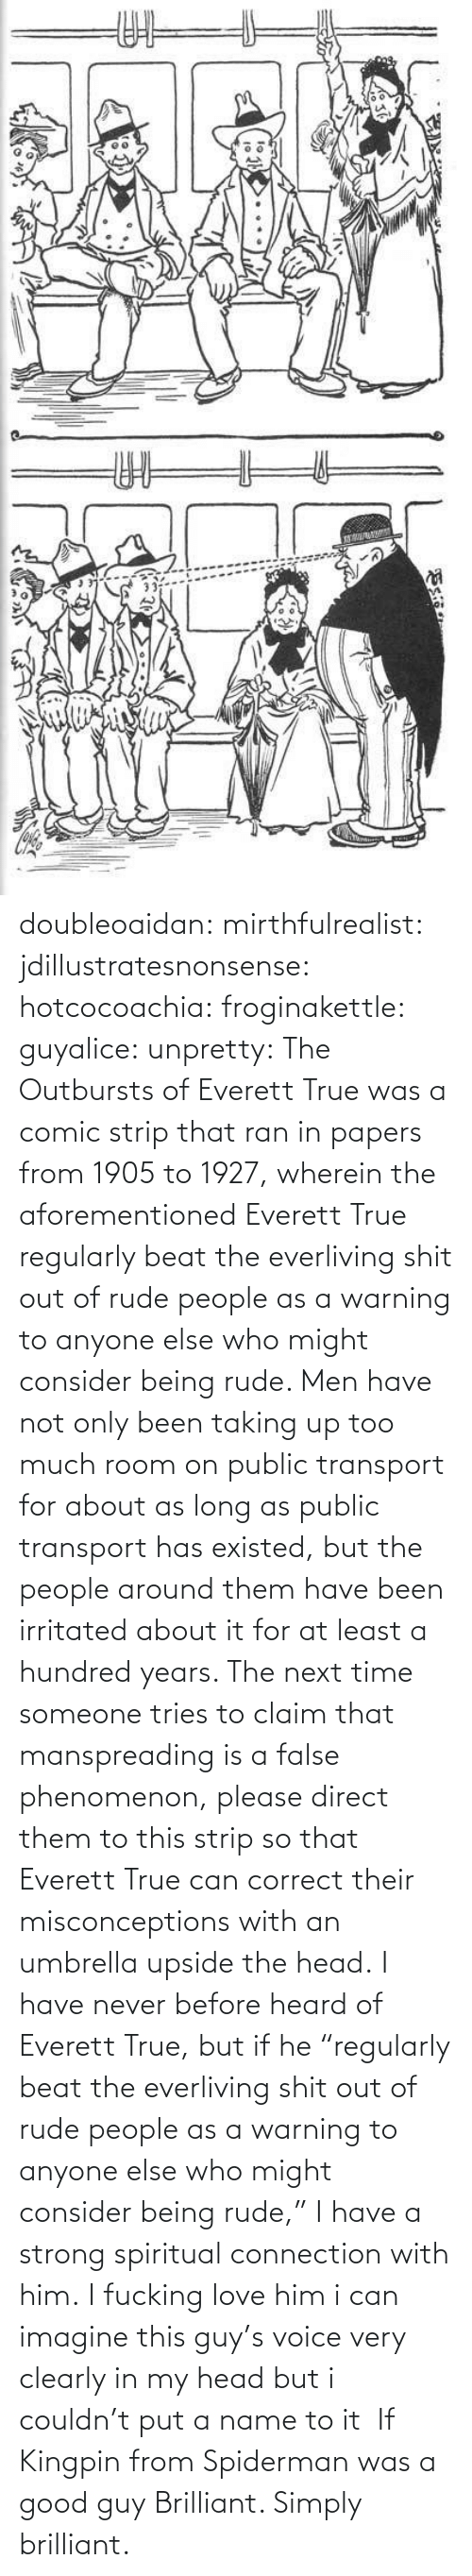 "name: doubleoaidan:  mirthfulrealist:  jdillustratesnonsense: hotcocoachia:  froginakettle:  guyalice:  unpretty:  The Outbursts of Everett True was a comic strip that ran in papers from 1905 to 1927, wherein the aforementioned Everett True regularly beat the everliving shit out of rude people as a warning to anyone else who might consider being rude. Men have not only been taking up too much room on public transport for about as long as public transport has existed, but the people around them have been irritated about it for at least a hundred years. The next time someone tries to claim that manspreading is a false phenomenon, please direct them to this strip so that Everett True can correct their misconceptions with an umbrella upside the head.  I have never before heard of Everett True, but if he ""regularly beat the everliving shit out of rude people as a warning to anyone else who might consider being rude,"" I have a strong spiritual connection with him.   I fucking love him  i can imagine this guy's voice very clearly in my head but i couldn't put a name to it   If Kingpin from Spiderman was a good guy   Brilliant. Simply brilliant."